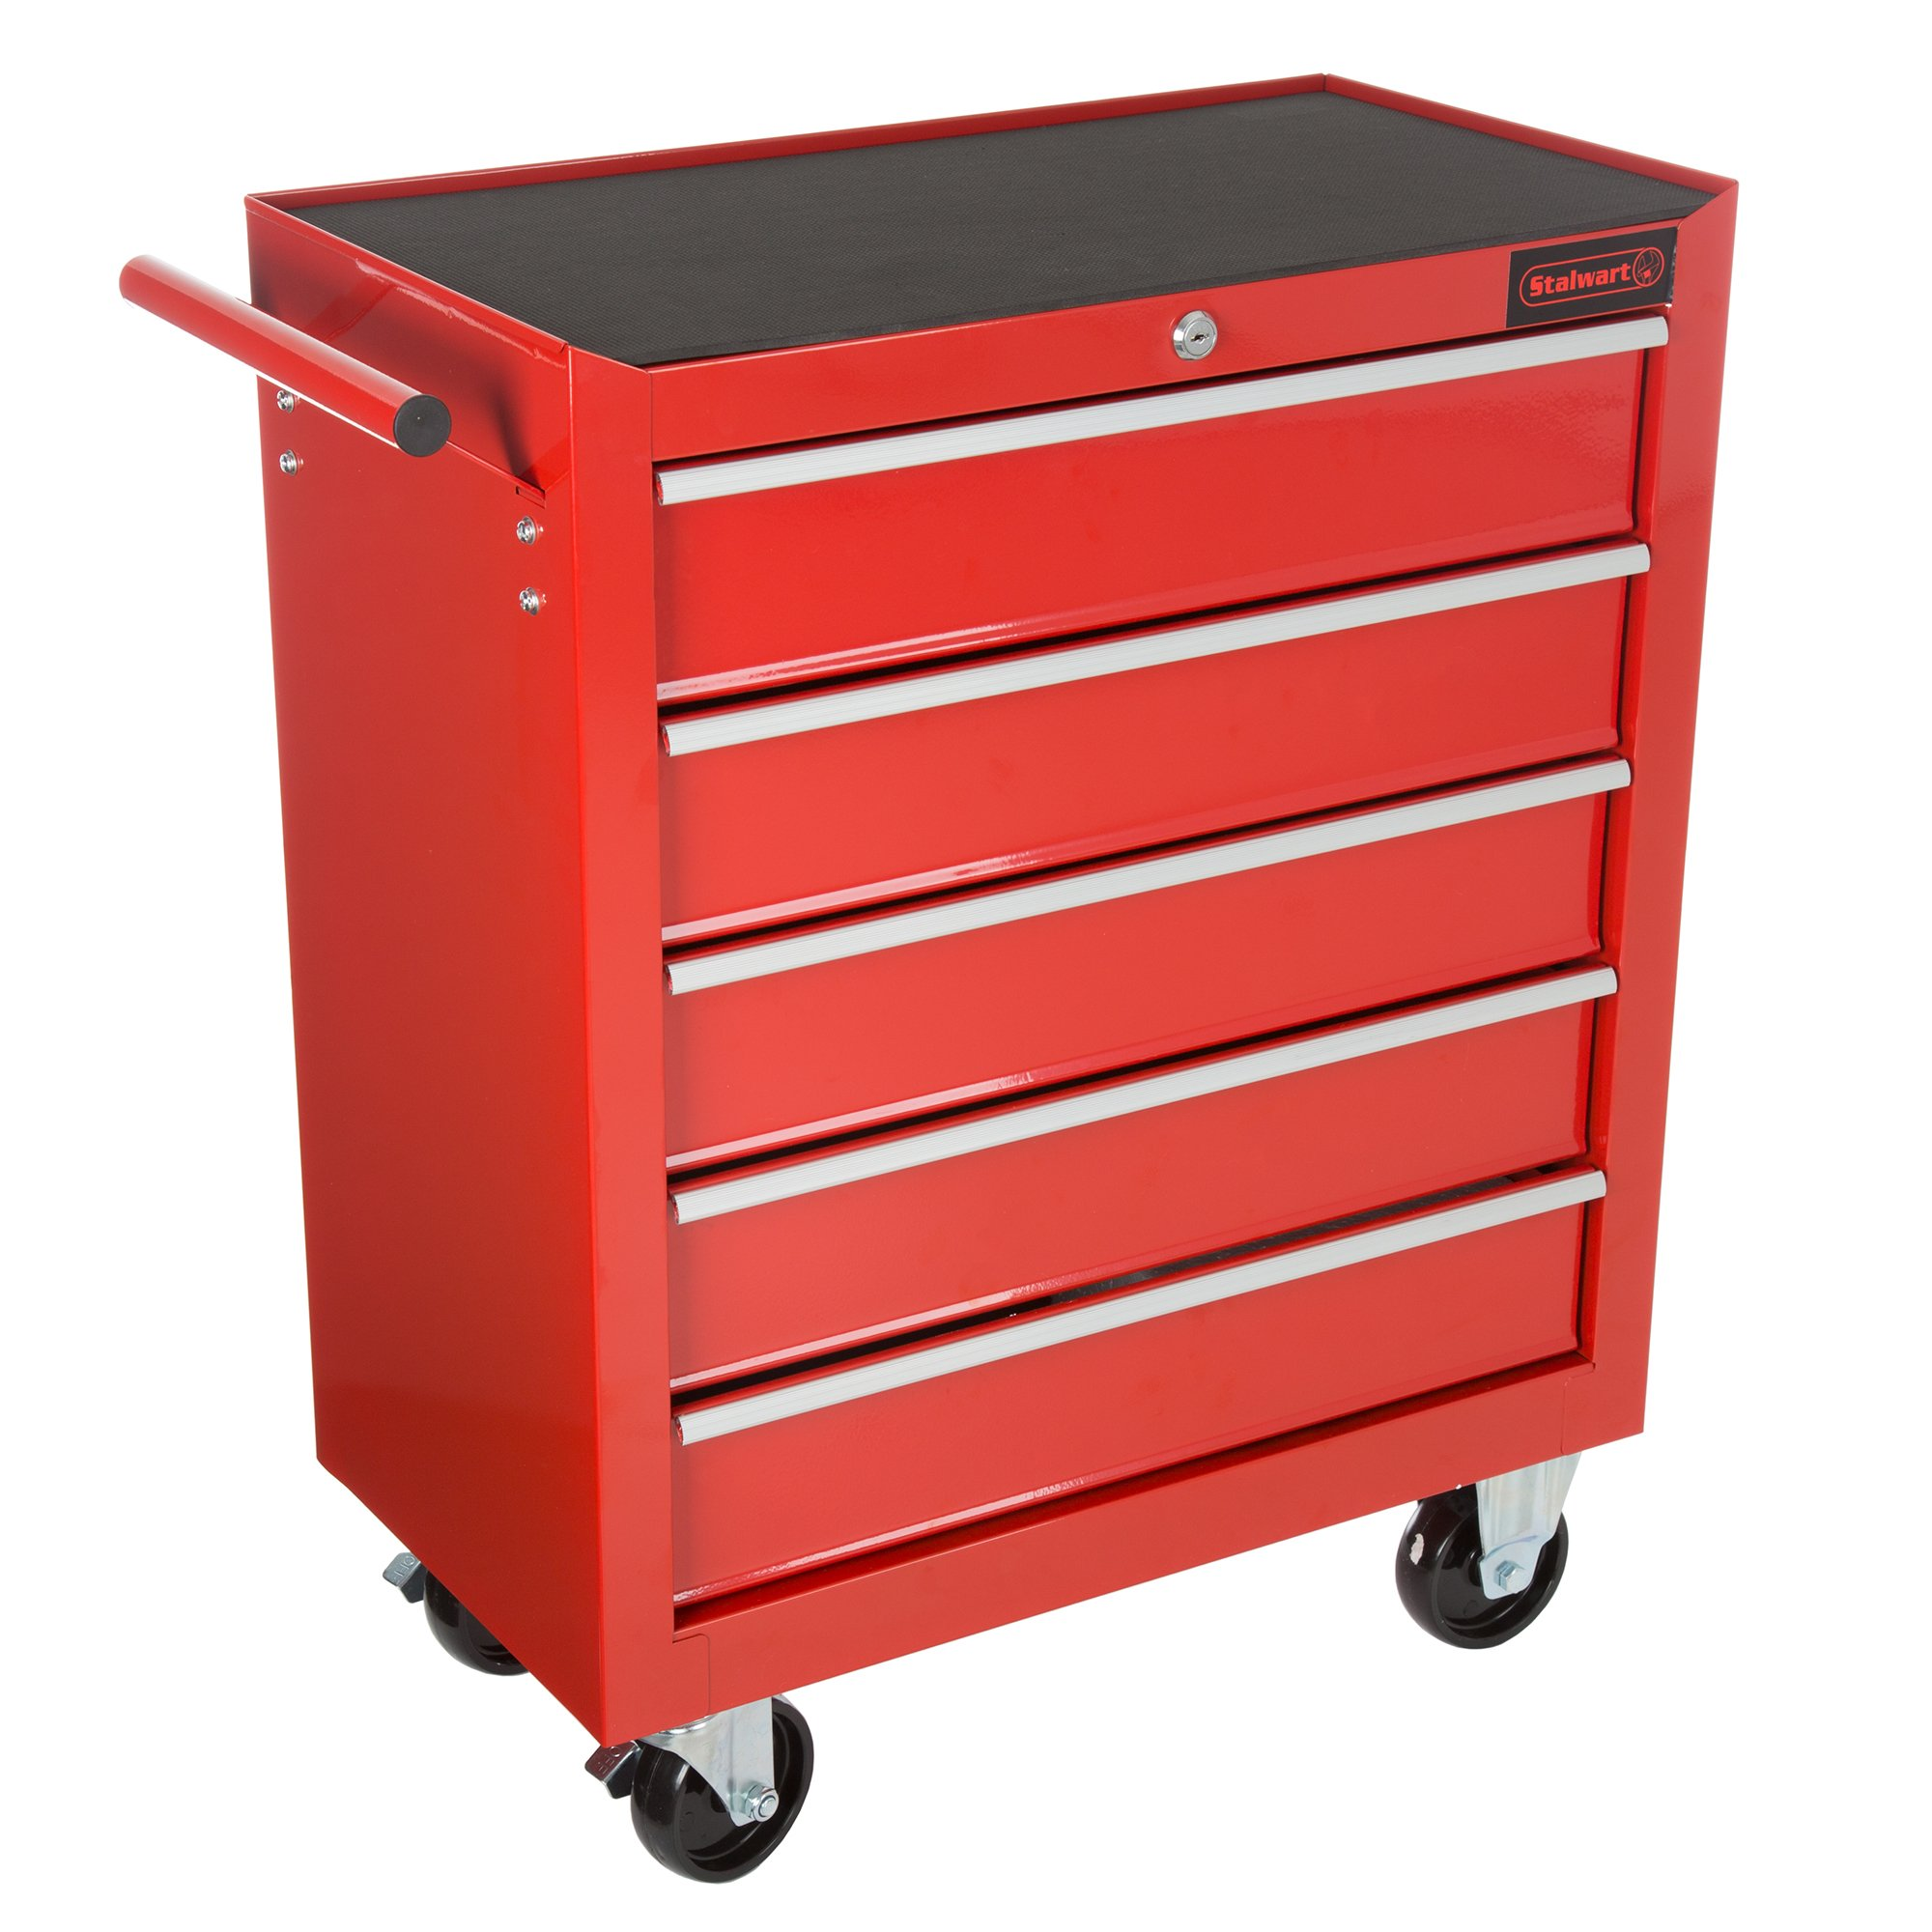 Rolling Tool Box Cabinet, 5 Drawer Portable Storage Chest Tools Organizer With Wheels, Ball Bearing Locking and Sliding Drawers By Stalwart (Red)